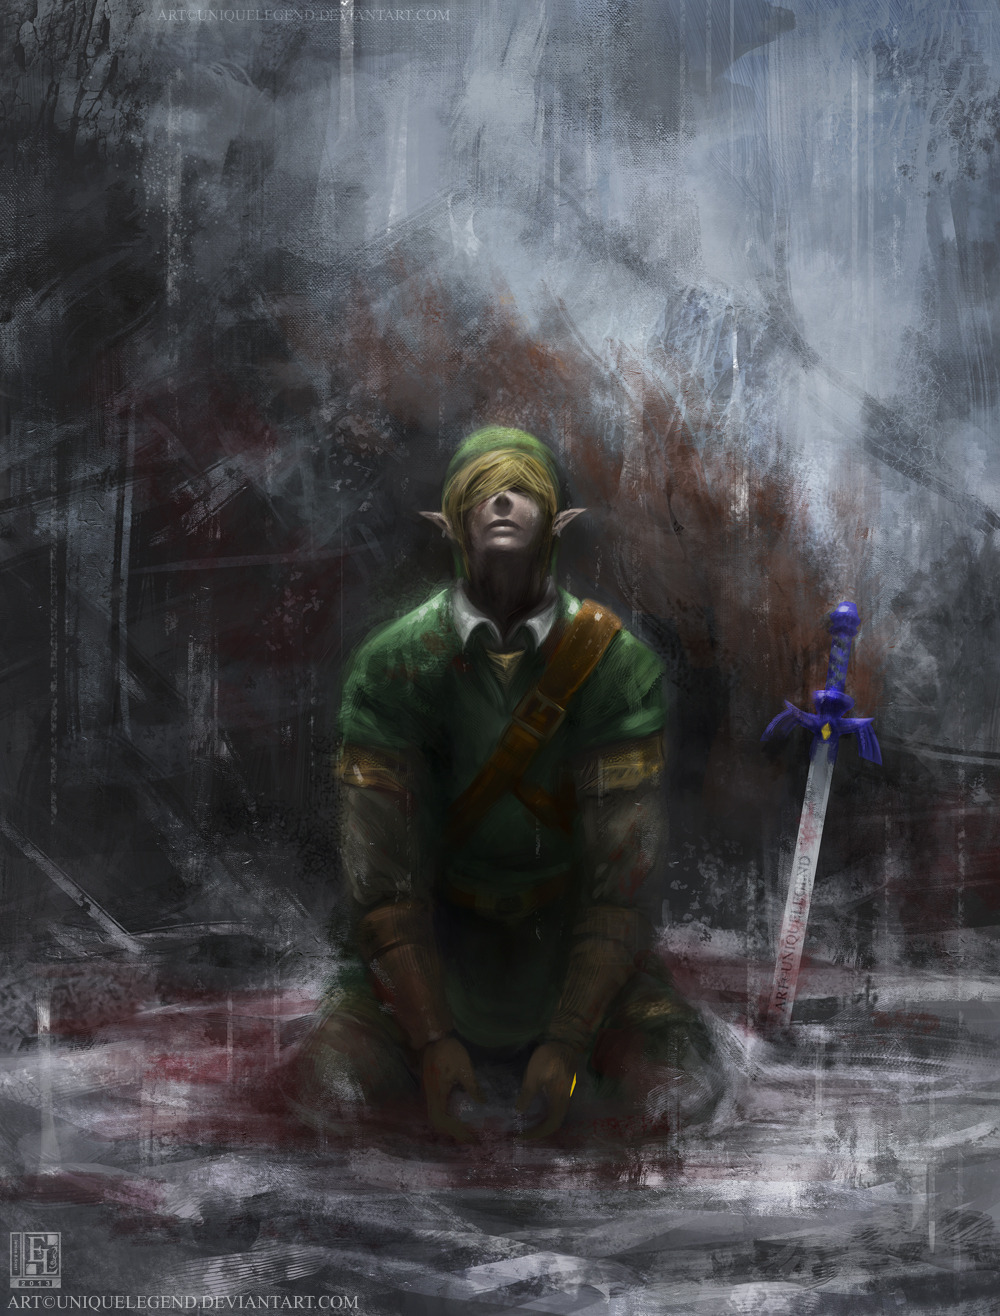 uniquelegend:  I just had to paint this. Inspired by one of the Assassin Creed official artworks found here, except I made my own version that represents the Legend of Zelda. Link has finished his adventure, with Ganon slayed in the background (as you can see his orange mane in the rain), and the Master Sword rested in the ground beside Link as he falls to his knees, looking up into the sky as it starts to rain to wash the blood, pain and evil away.I kinda wish we would get a Zelda game as mature as this, but it'll probably never happen. So all I can do is draw the scenes for my own entertainment!